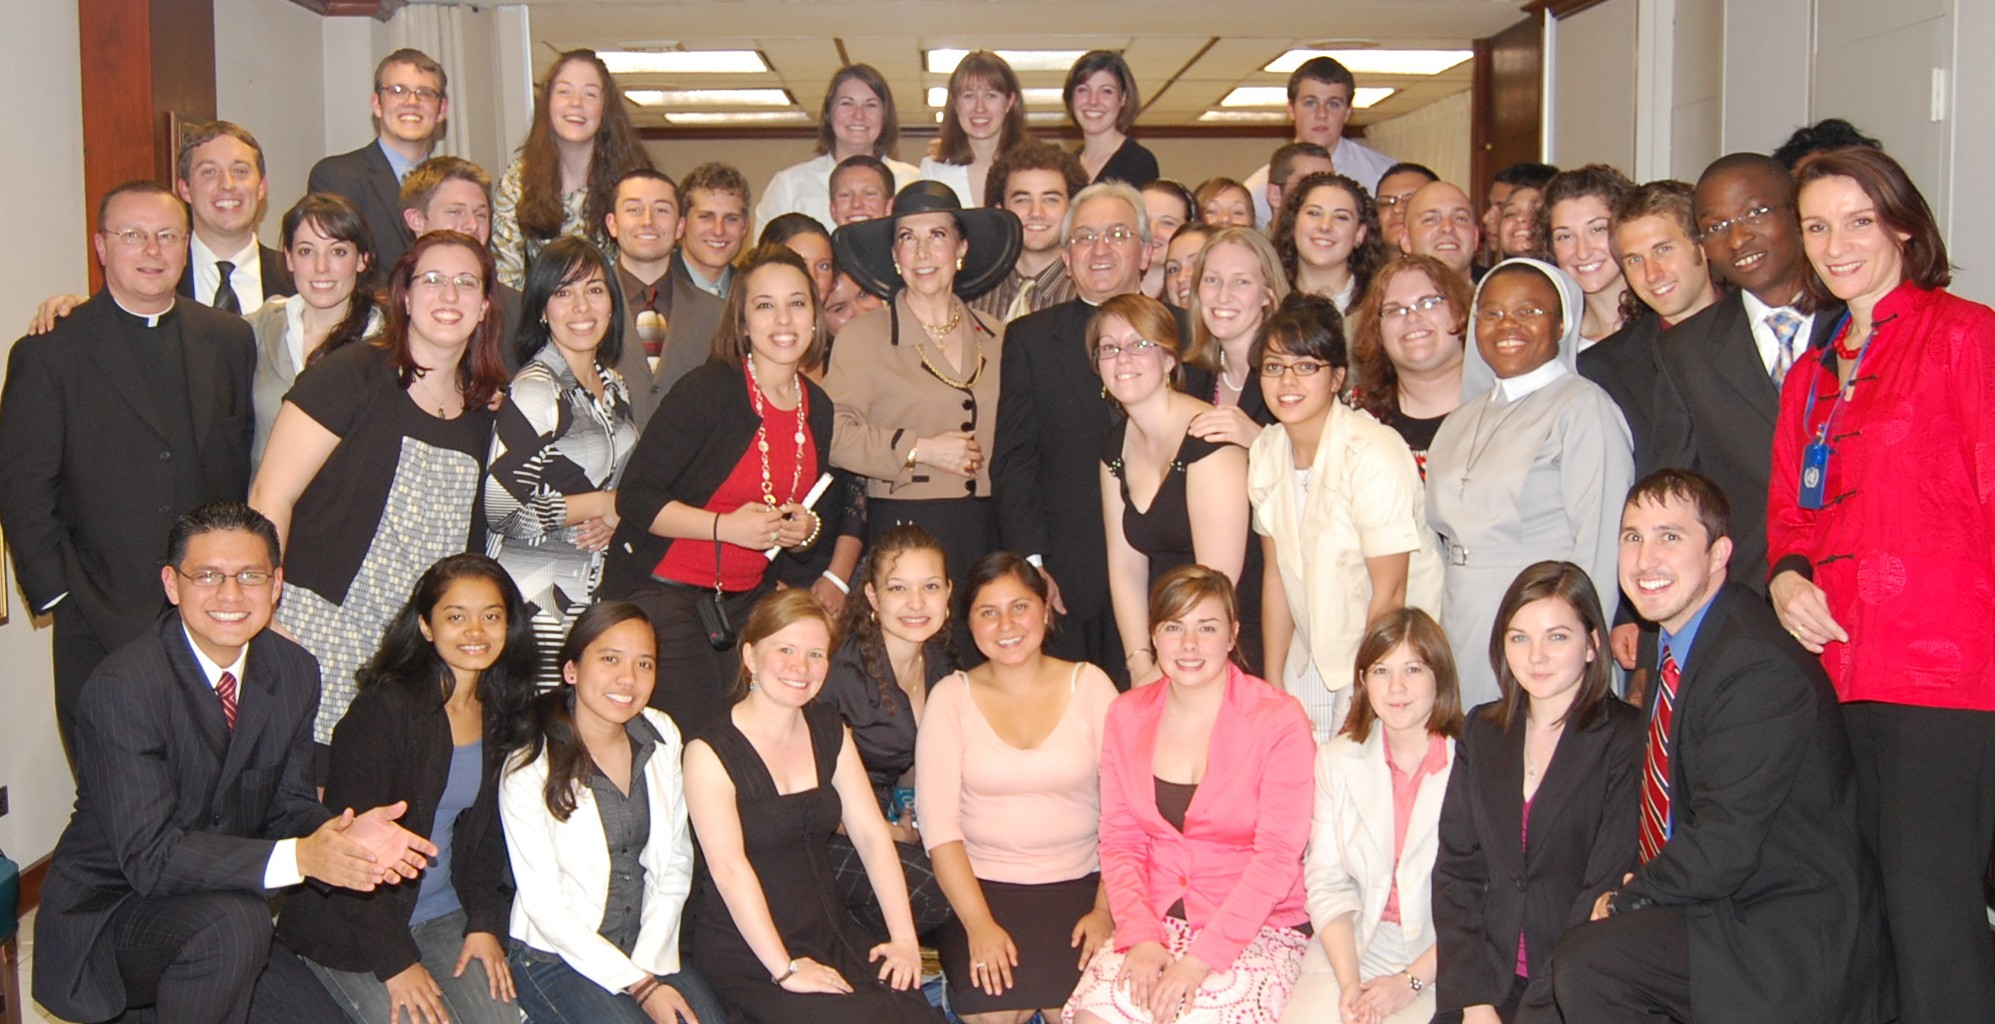 2008 CST Seminar - Group photo